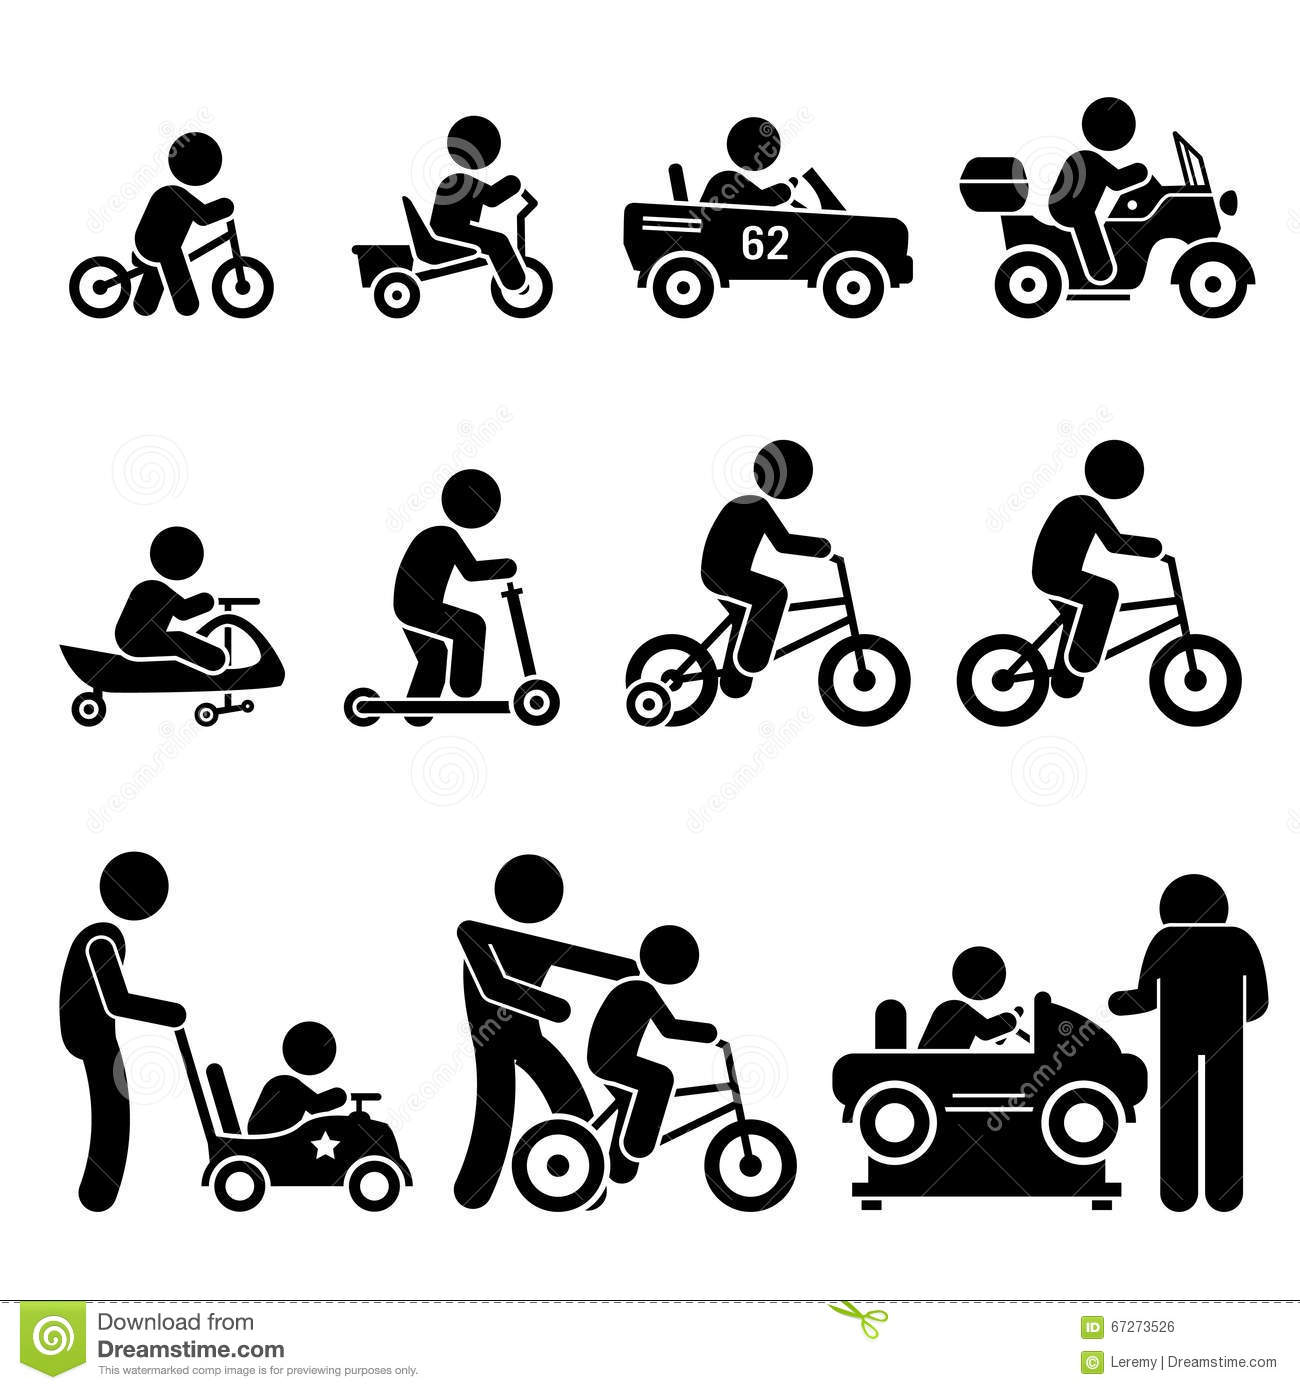 Small Children Riding Toy Vehicles And Bicycle Set Clipart